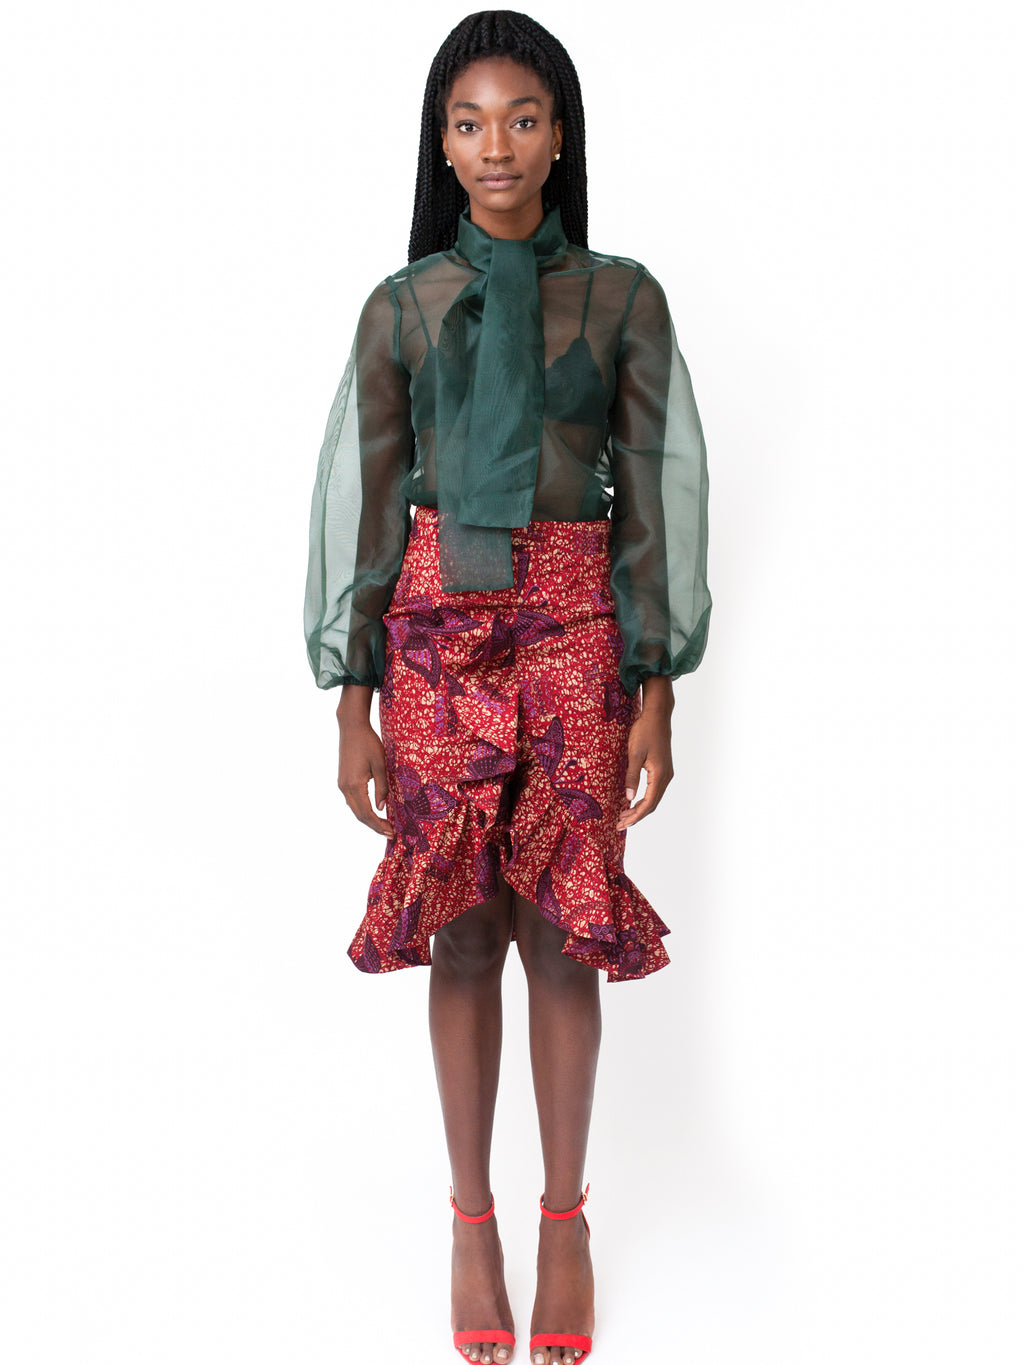 Innika Skirt - Chen Burkett New York